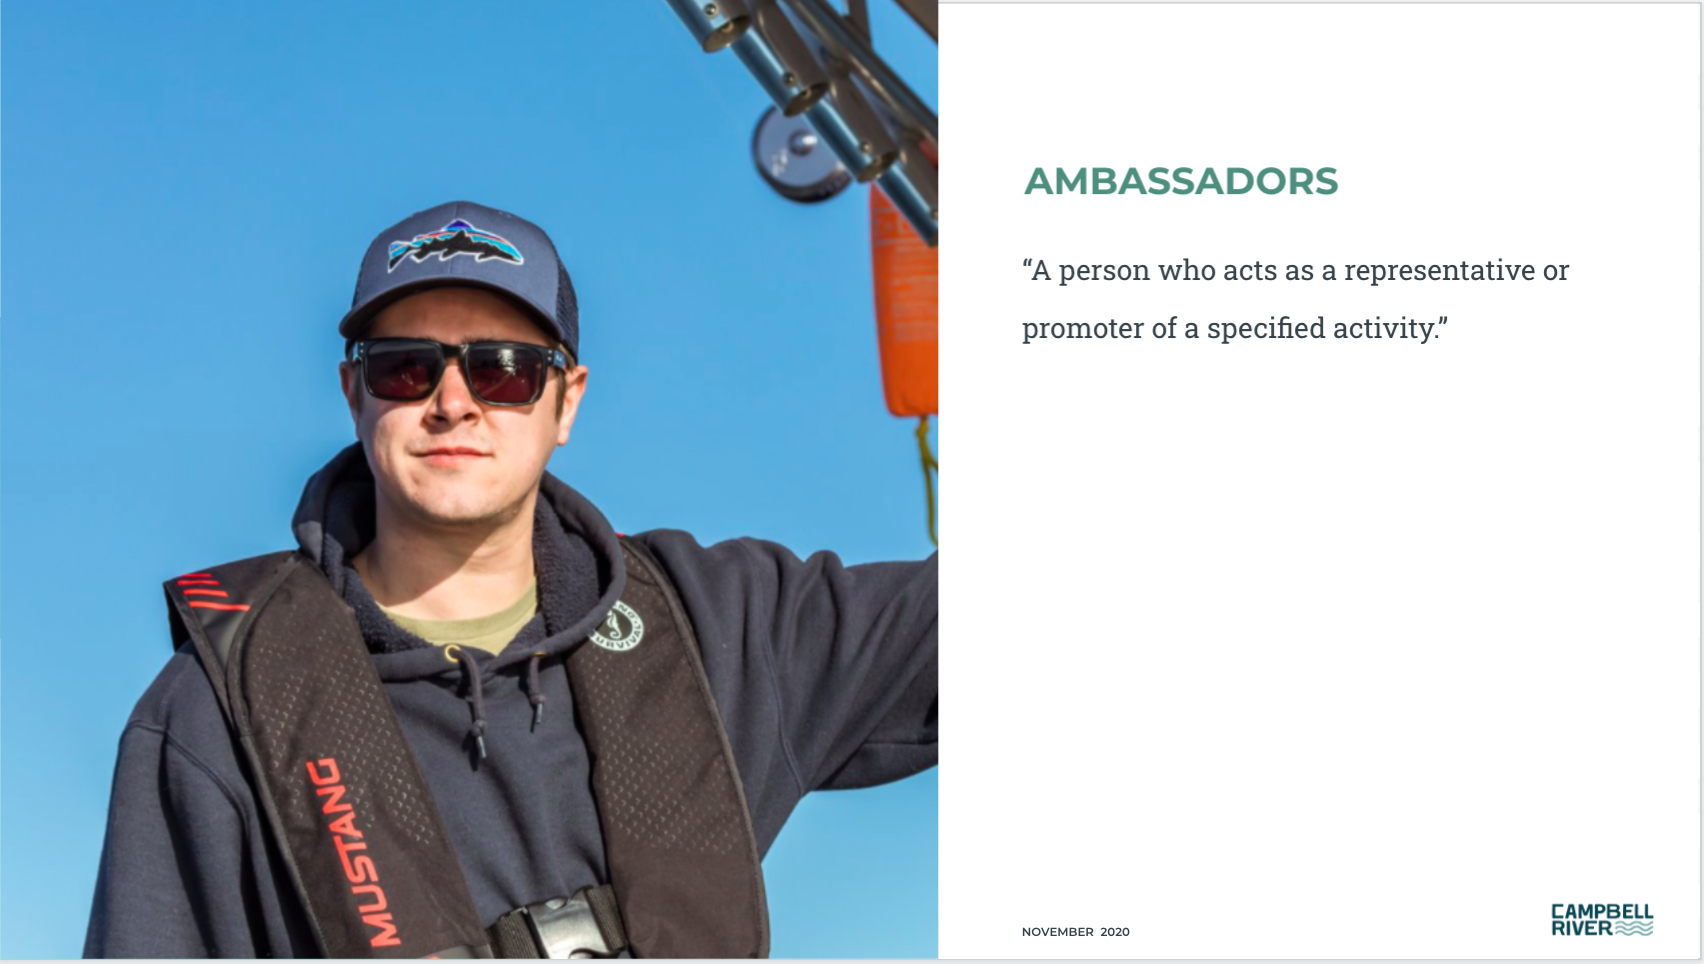 Local ambassadors are people who act as a representative or promotor of a specified activity.